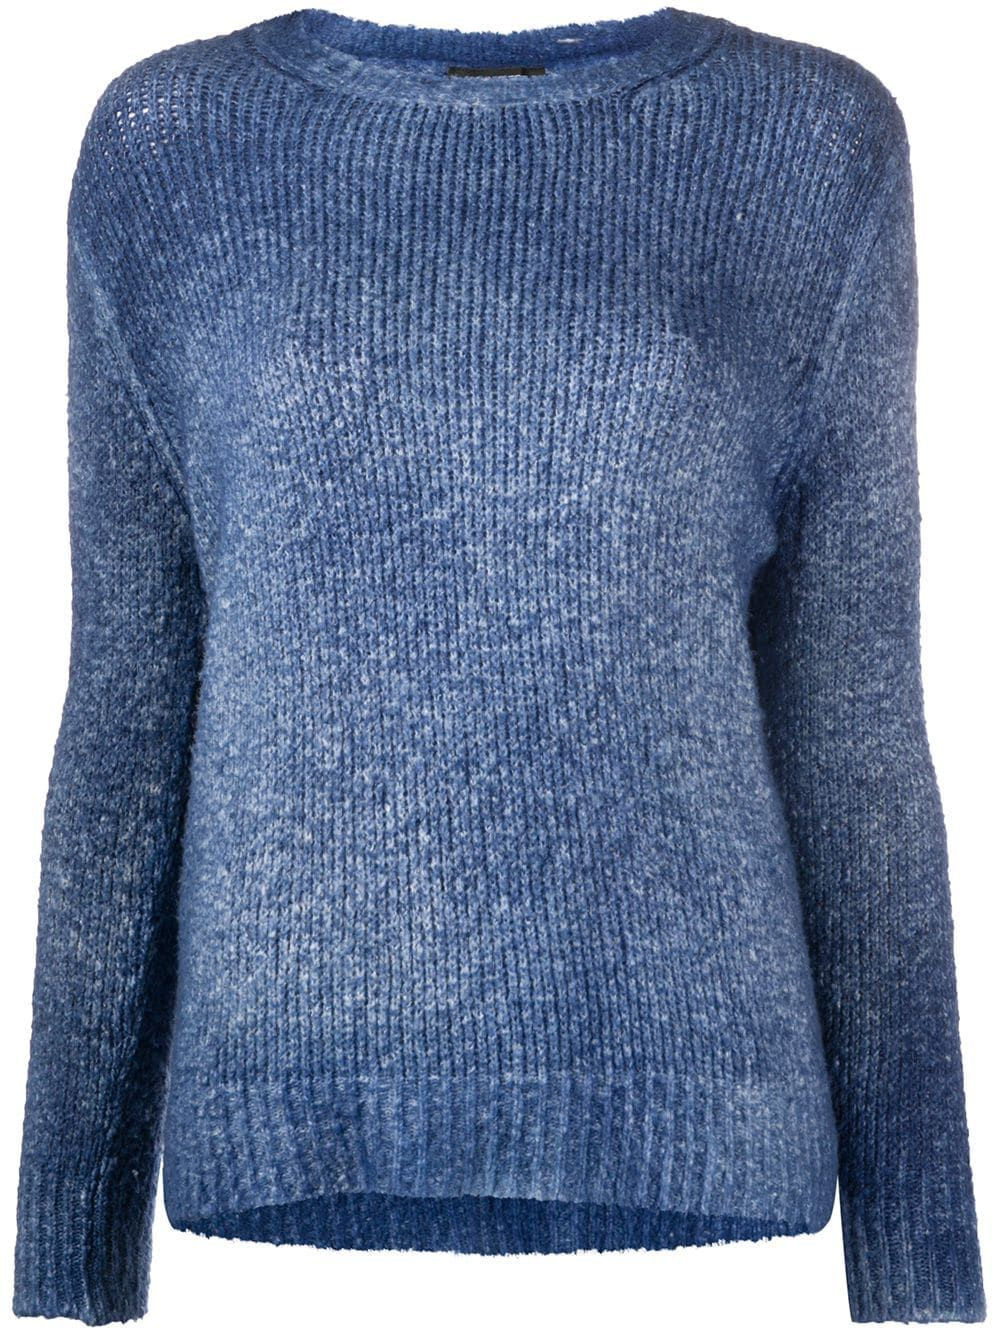 Avant Toi chunky knit jumper - Blue